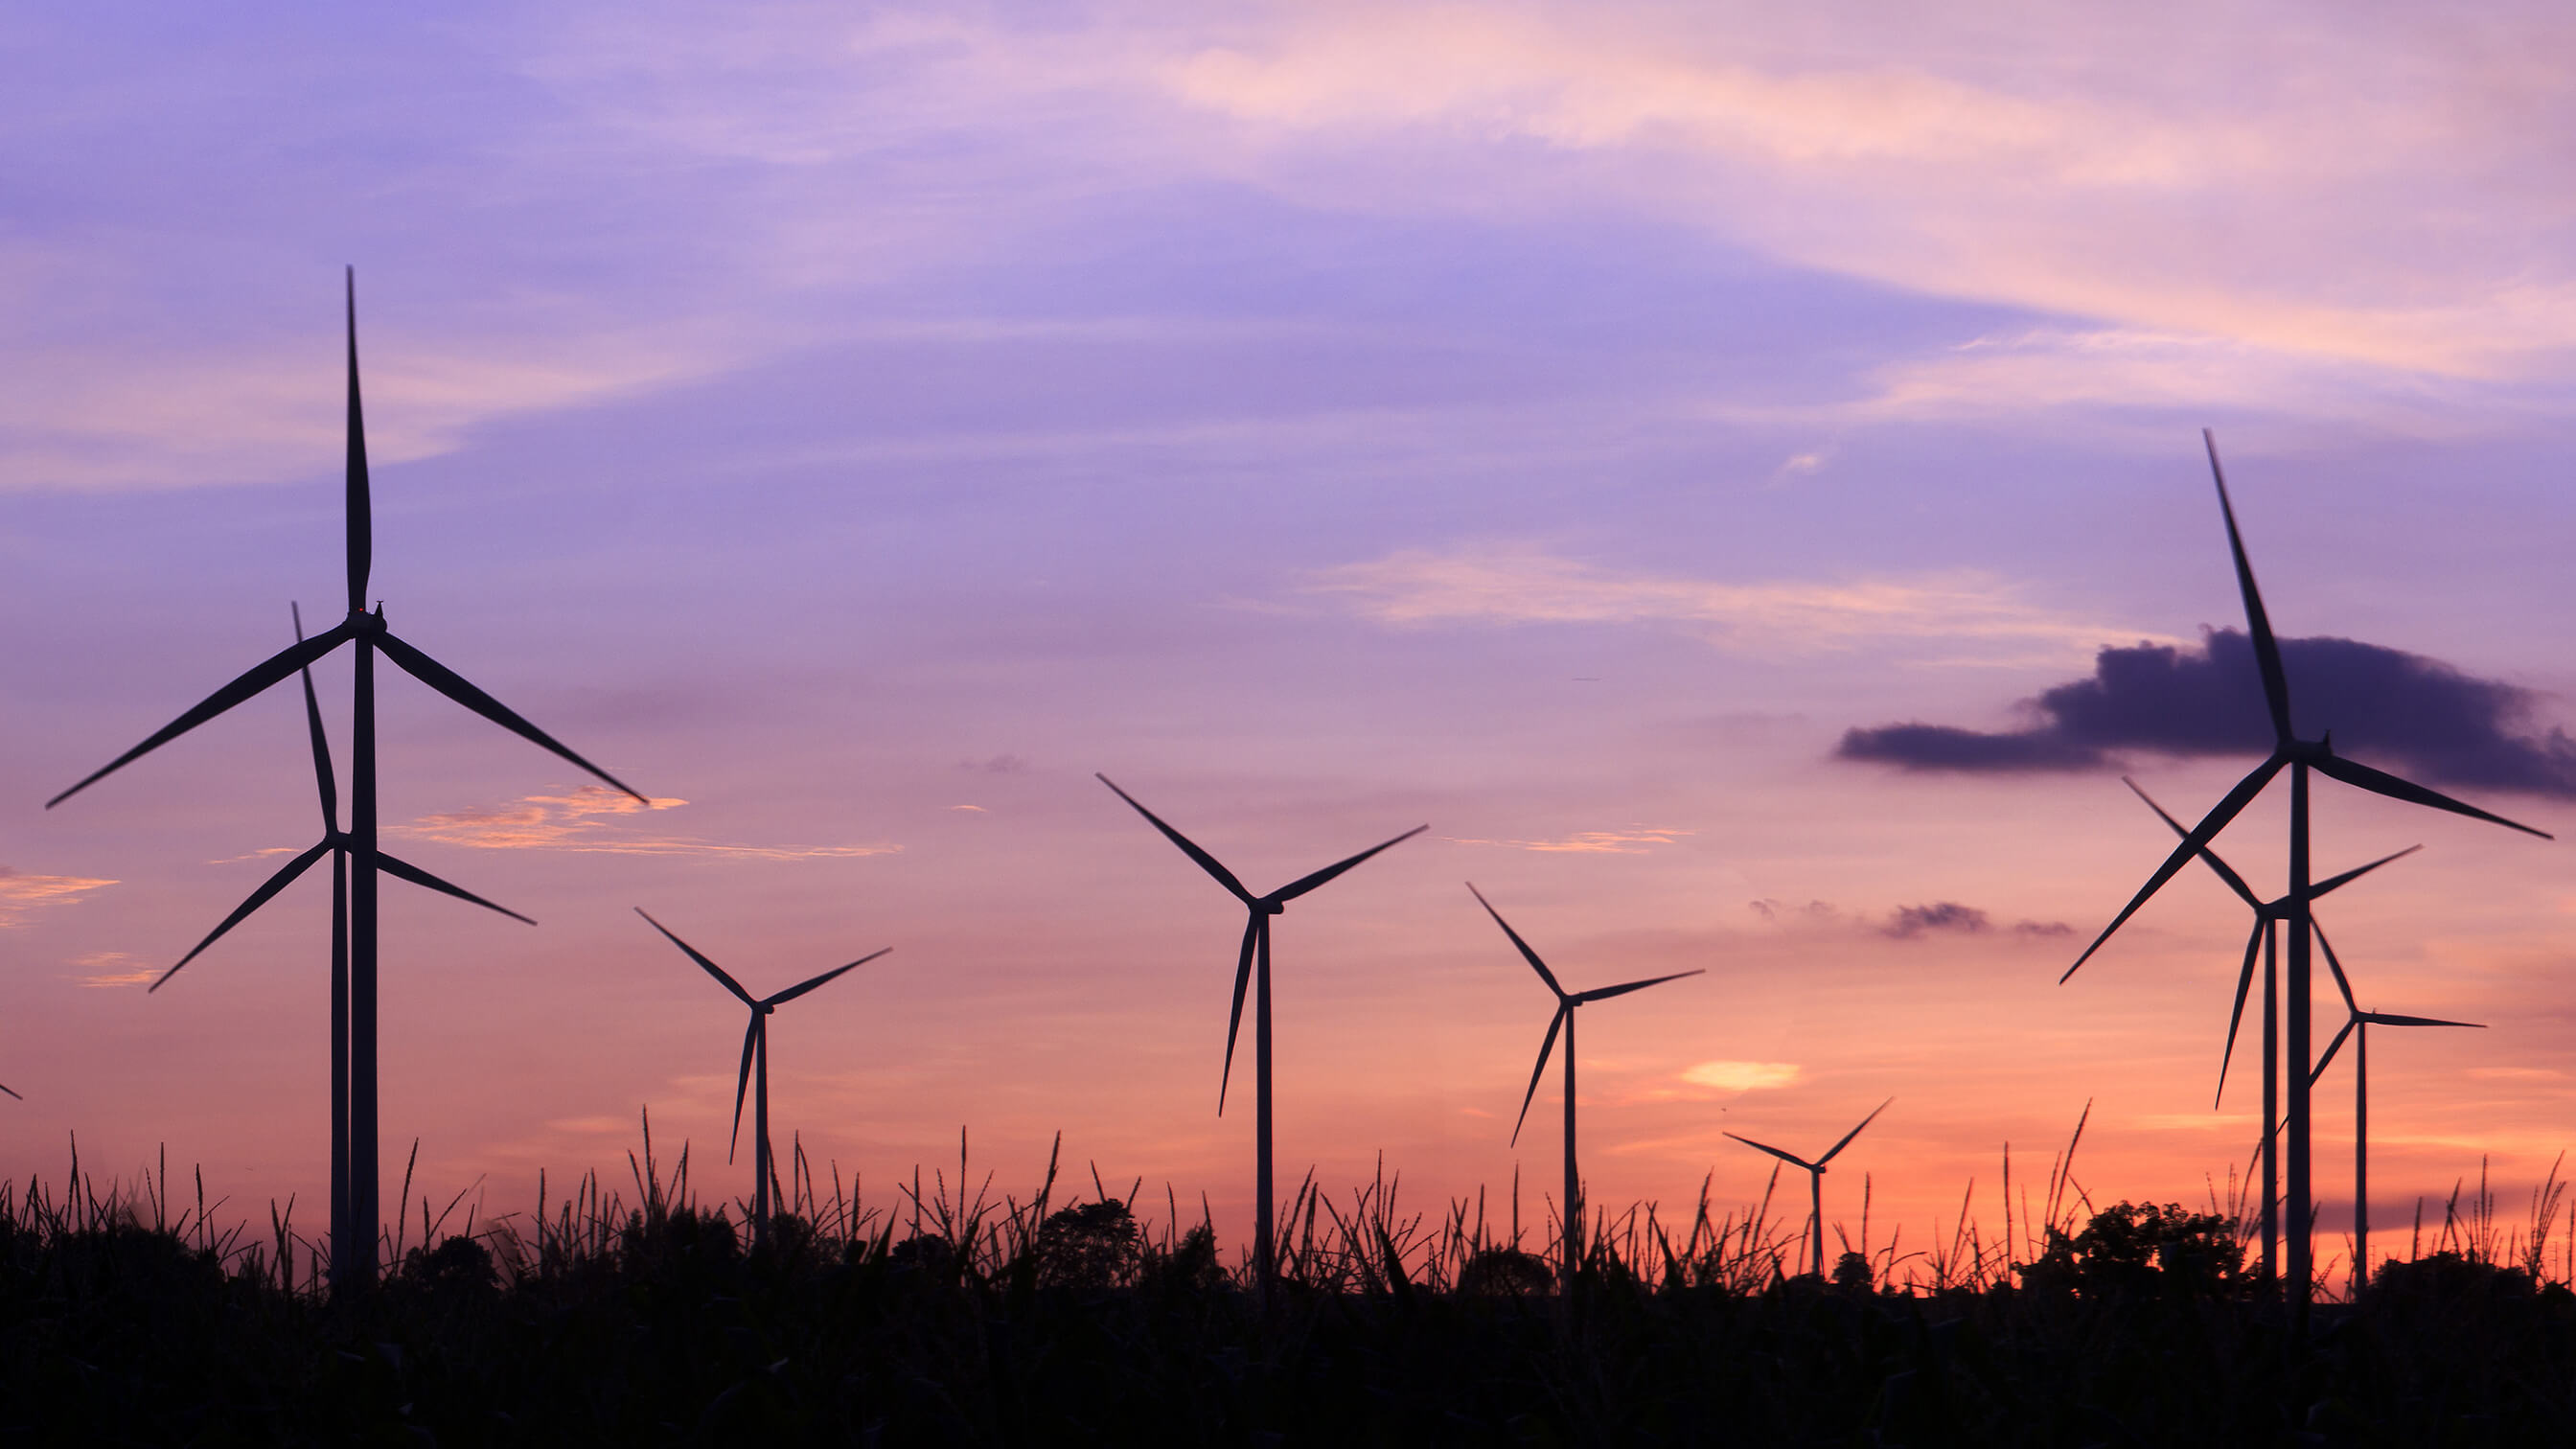 Wind turbines with purple sunset in background